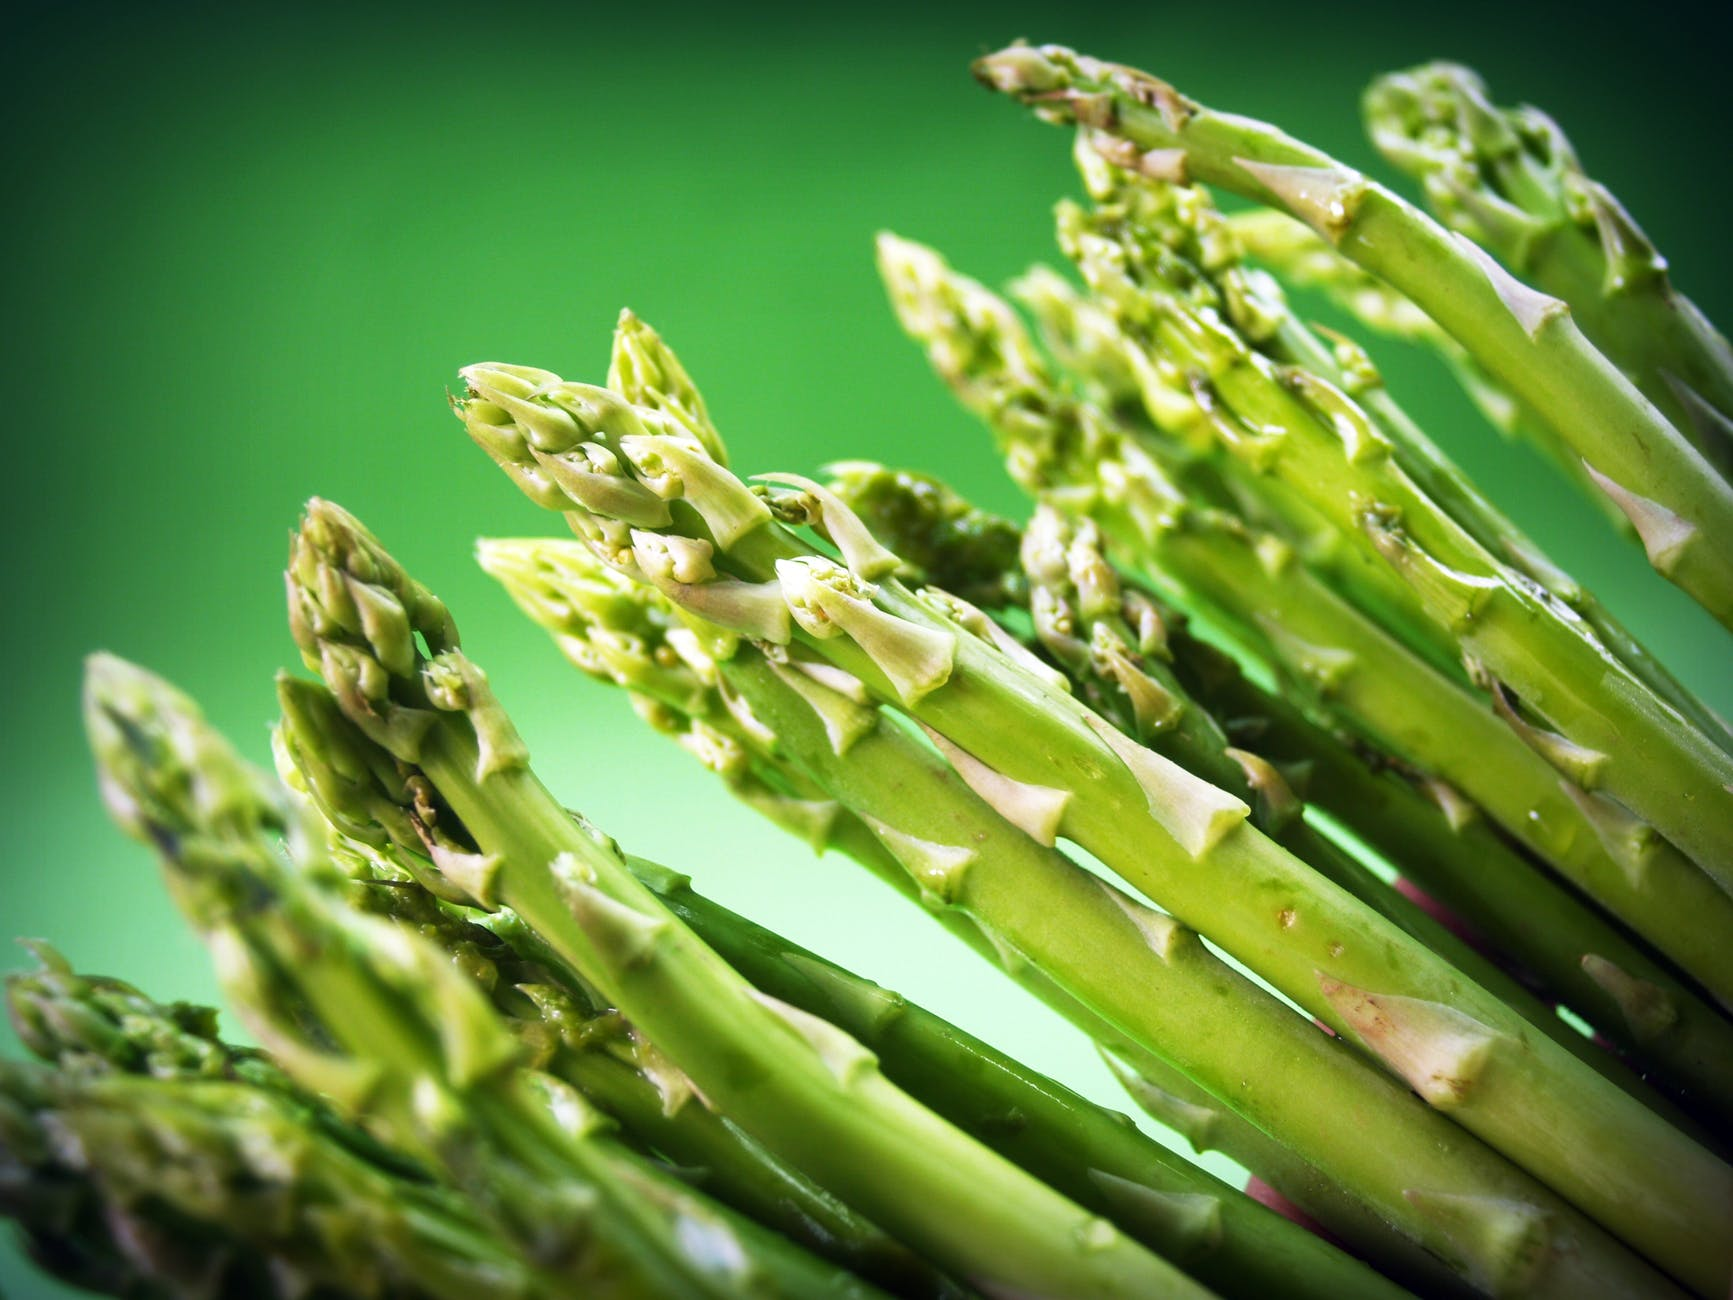 Asparagus Plant Care | Growing Asparagus From Seeds | Garden Season Planting Guide